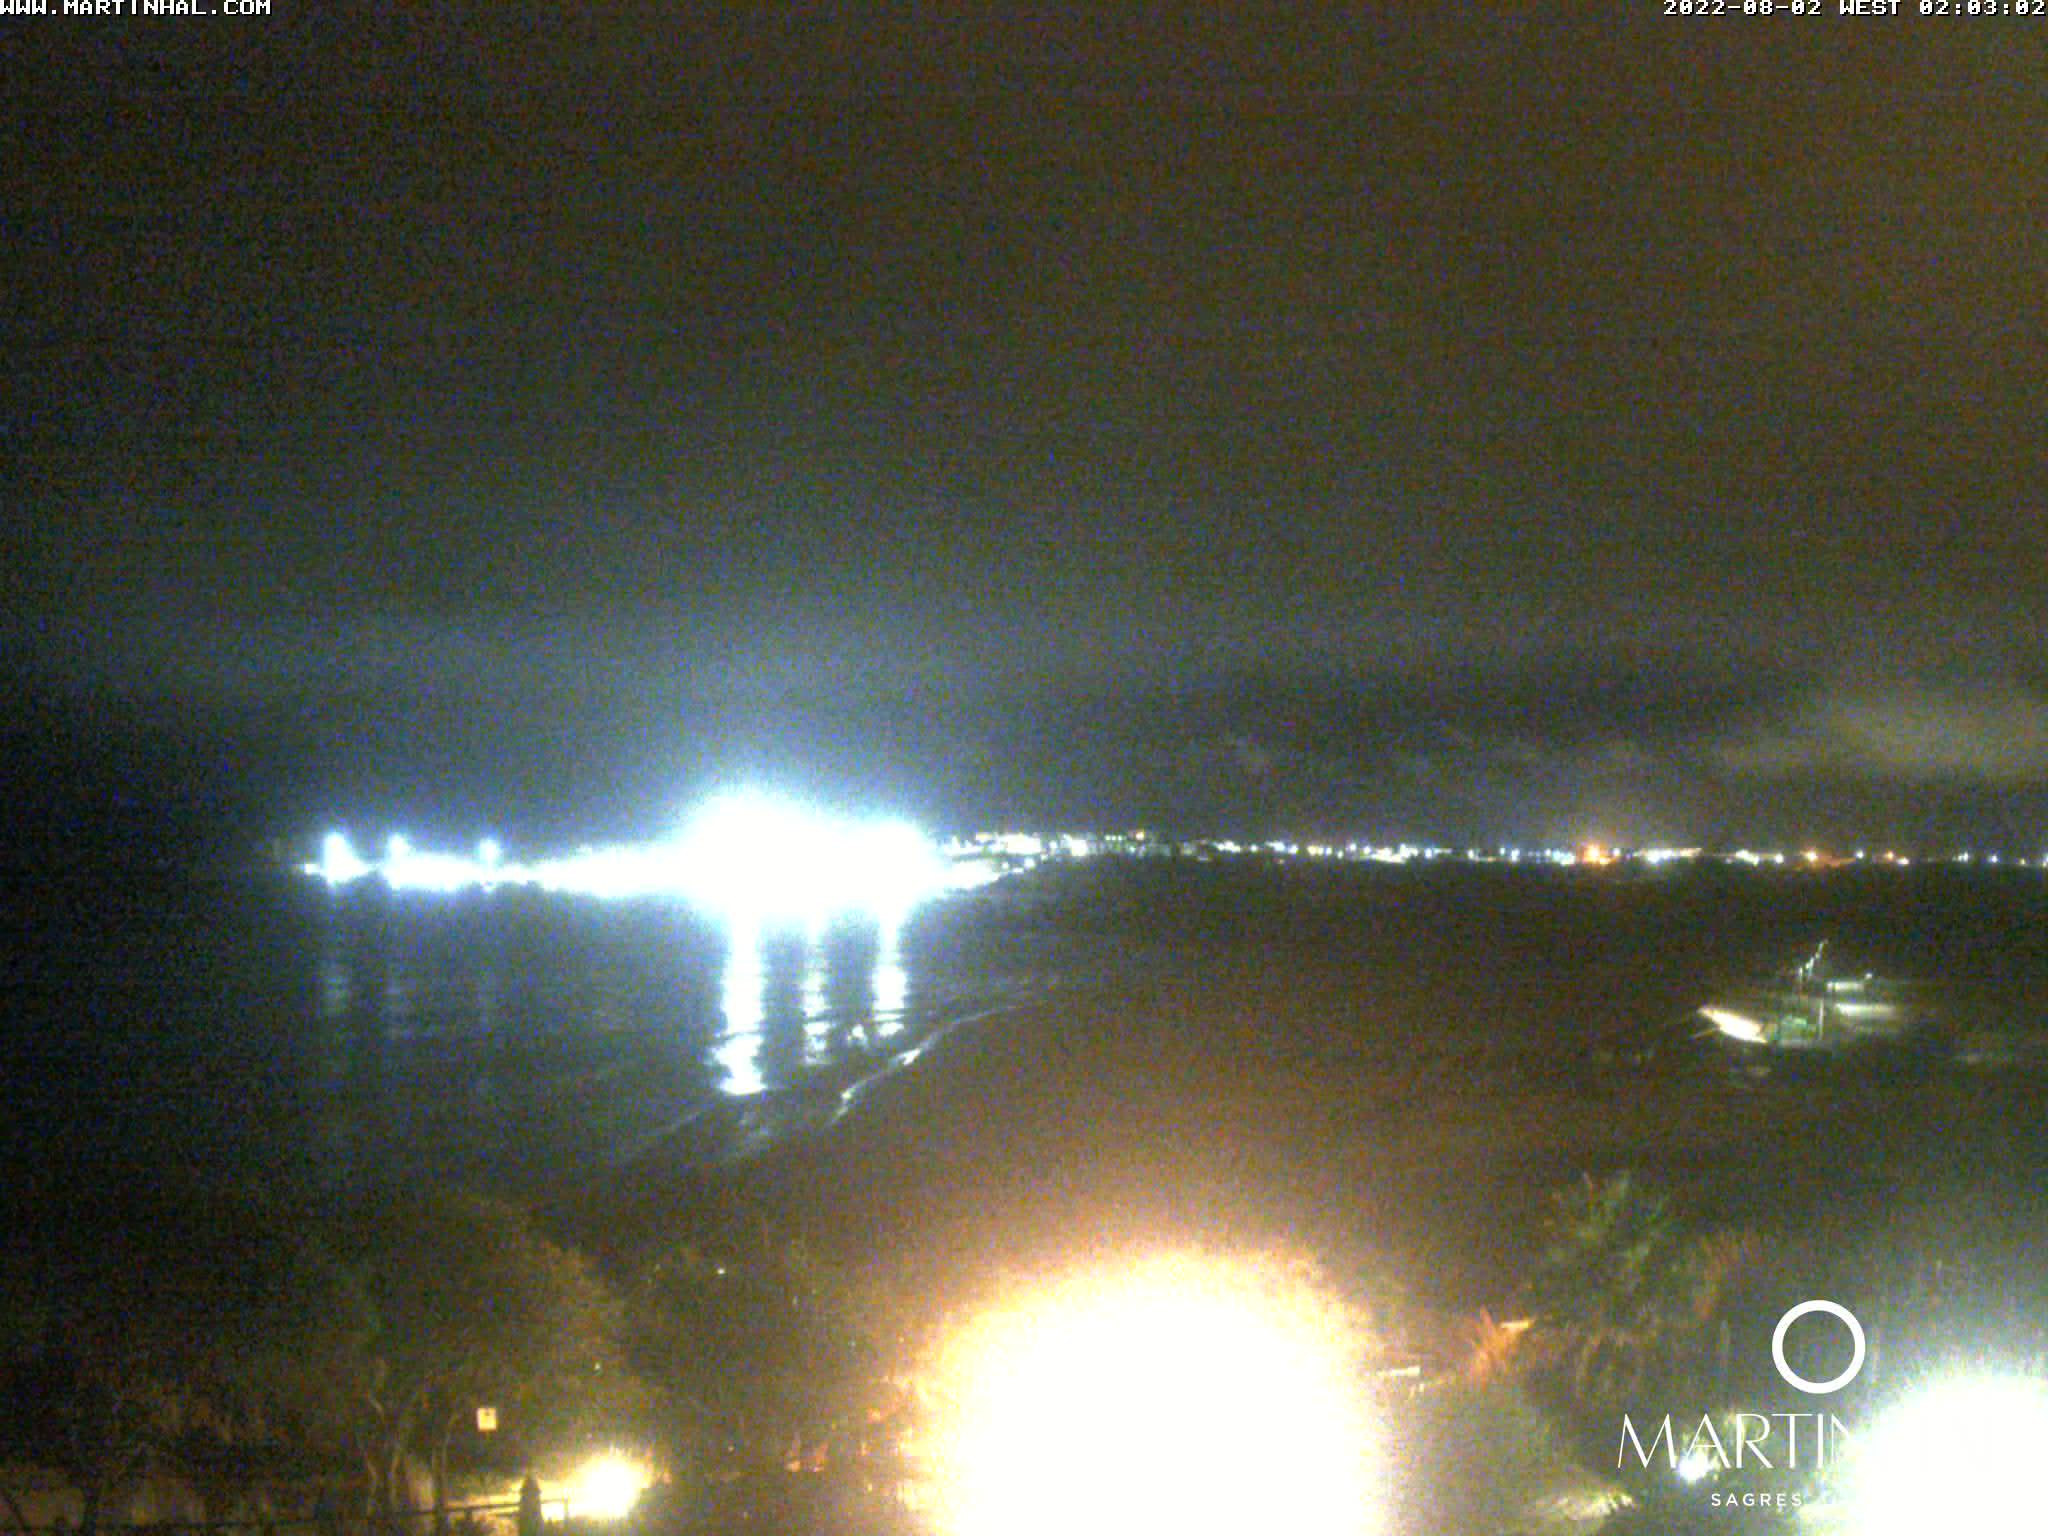 Webcam Sagres Algarve Portugal 2am